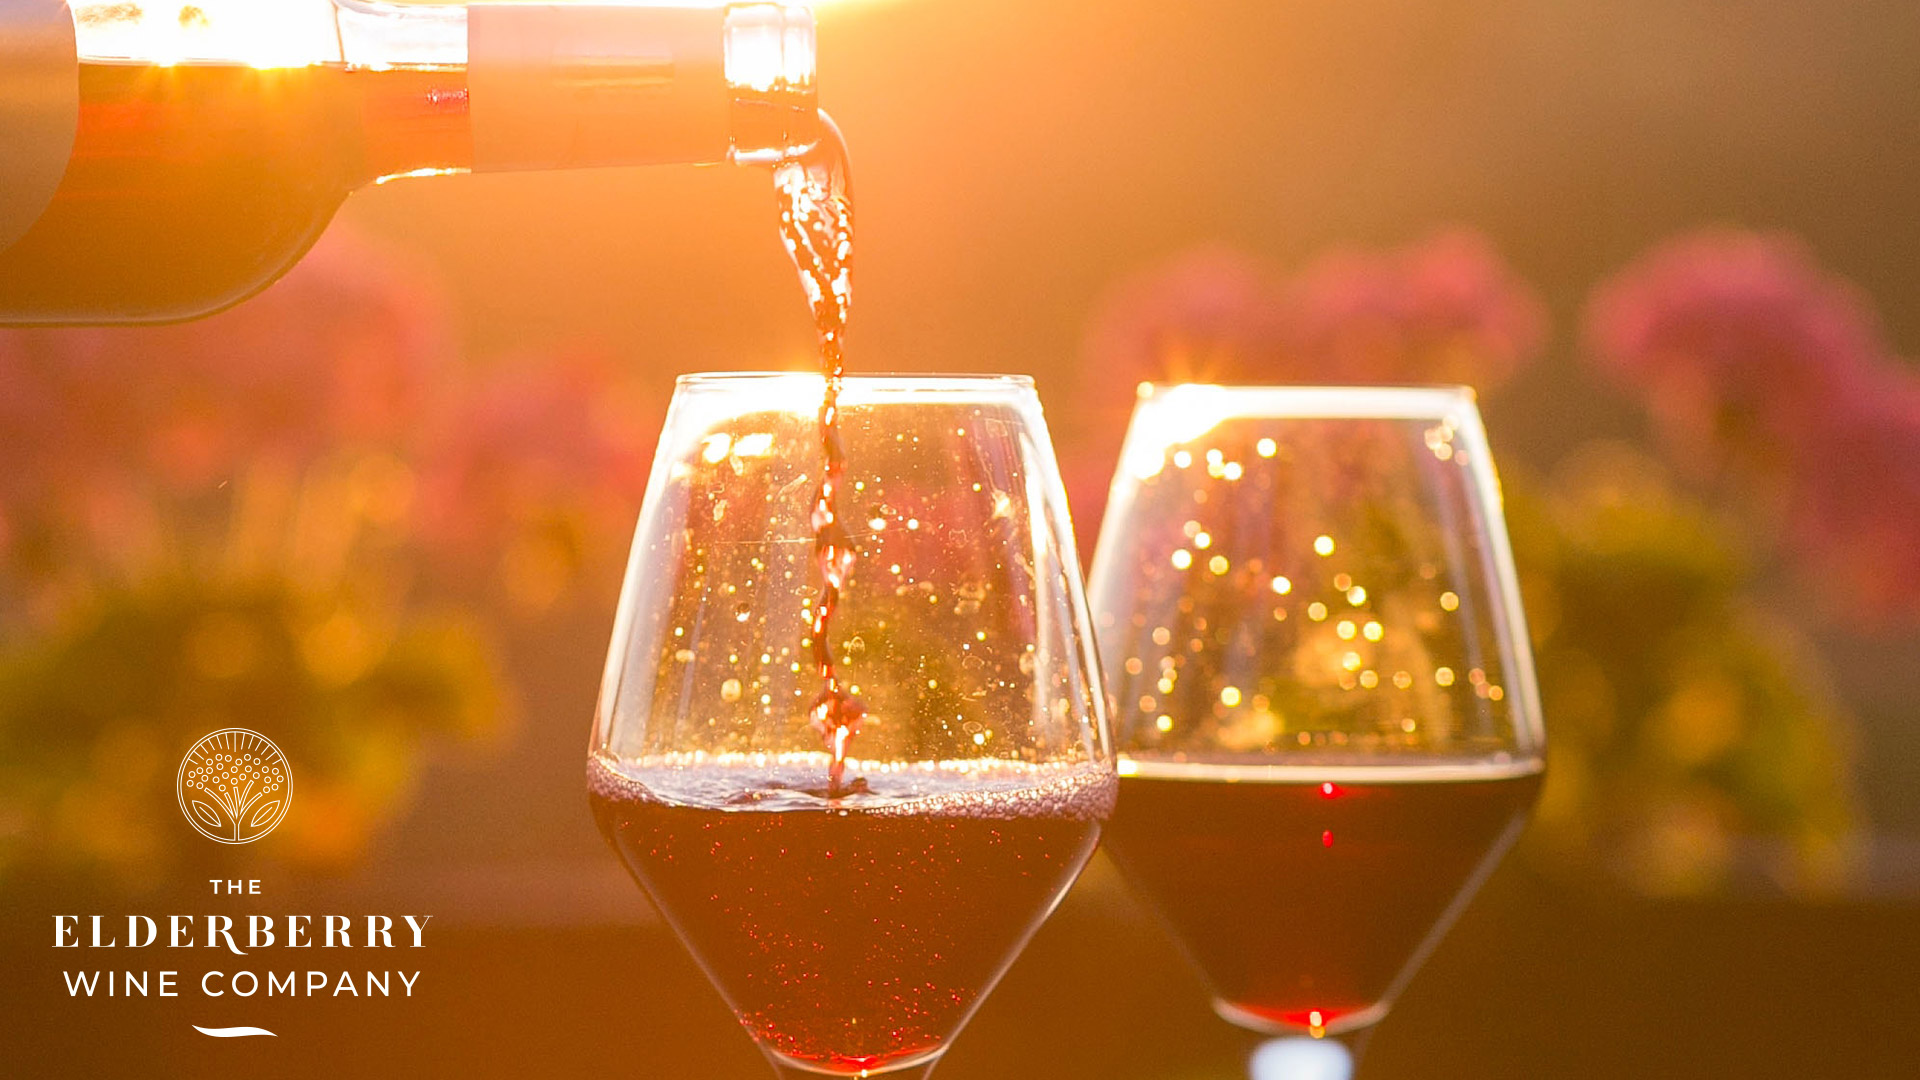 Two wine glasses being filled with elderberry wine